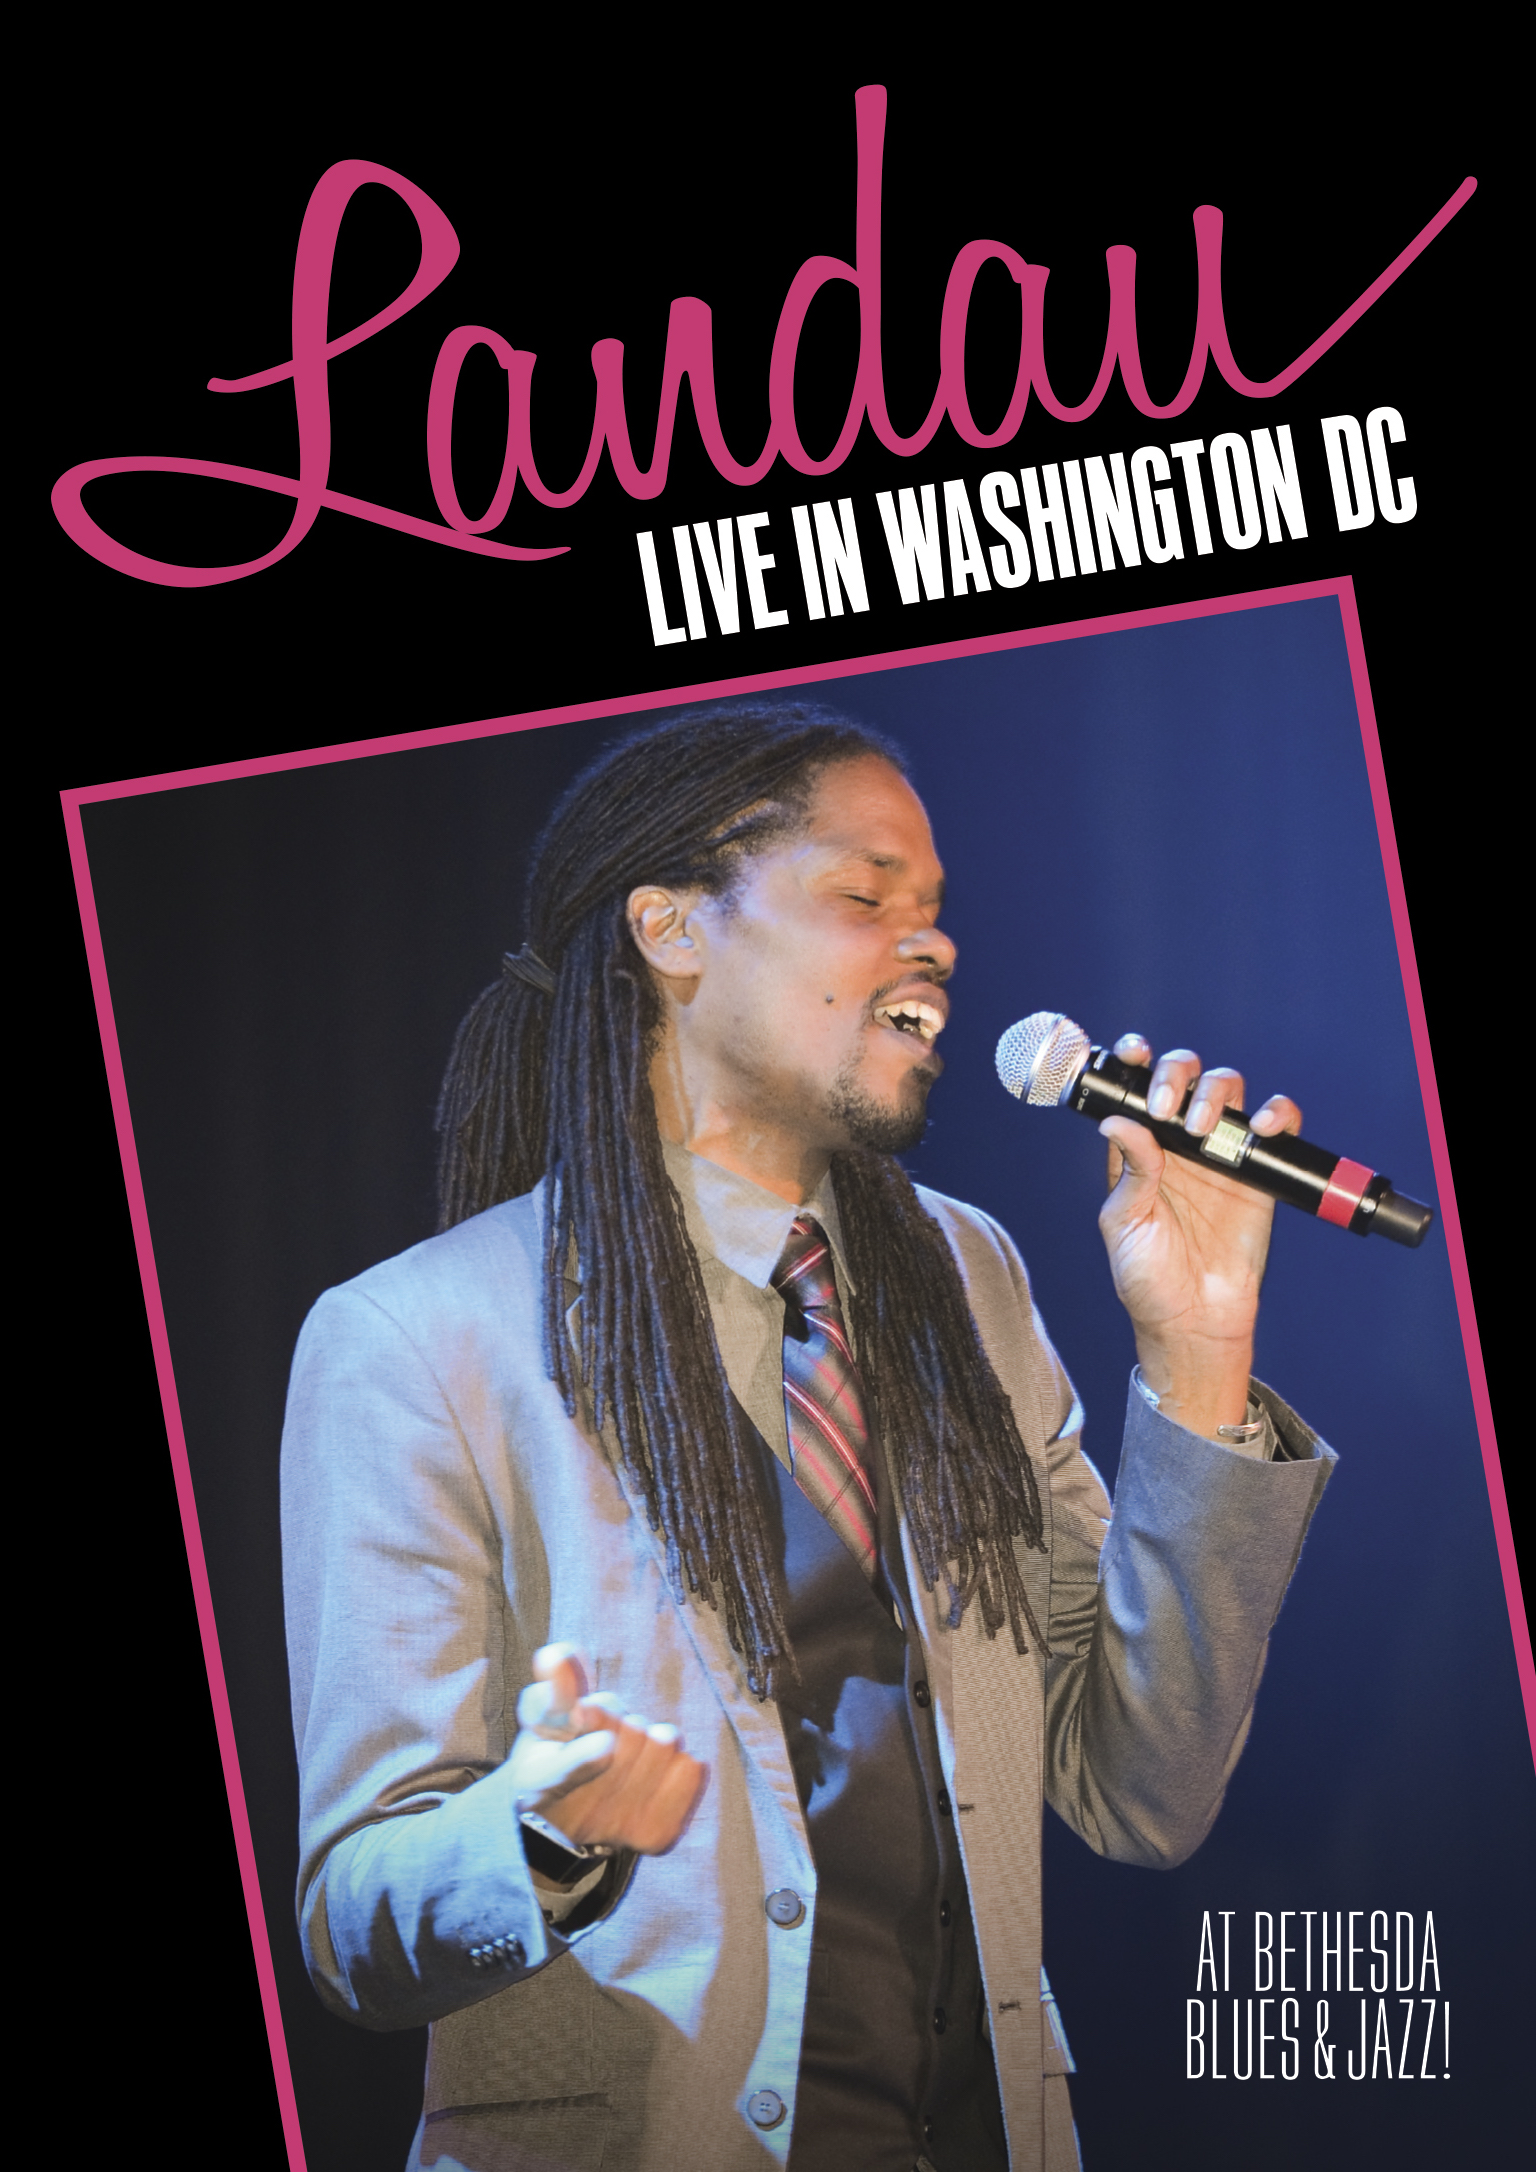 Landau Live in Washington DC